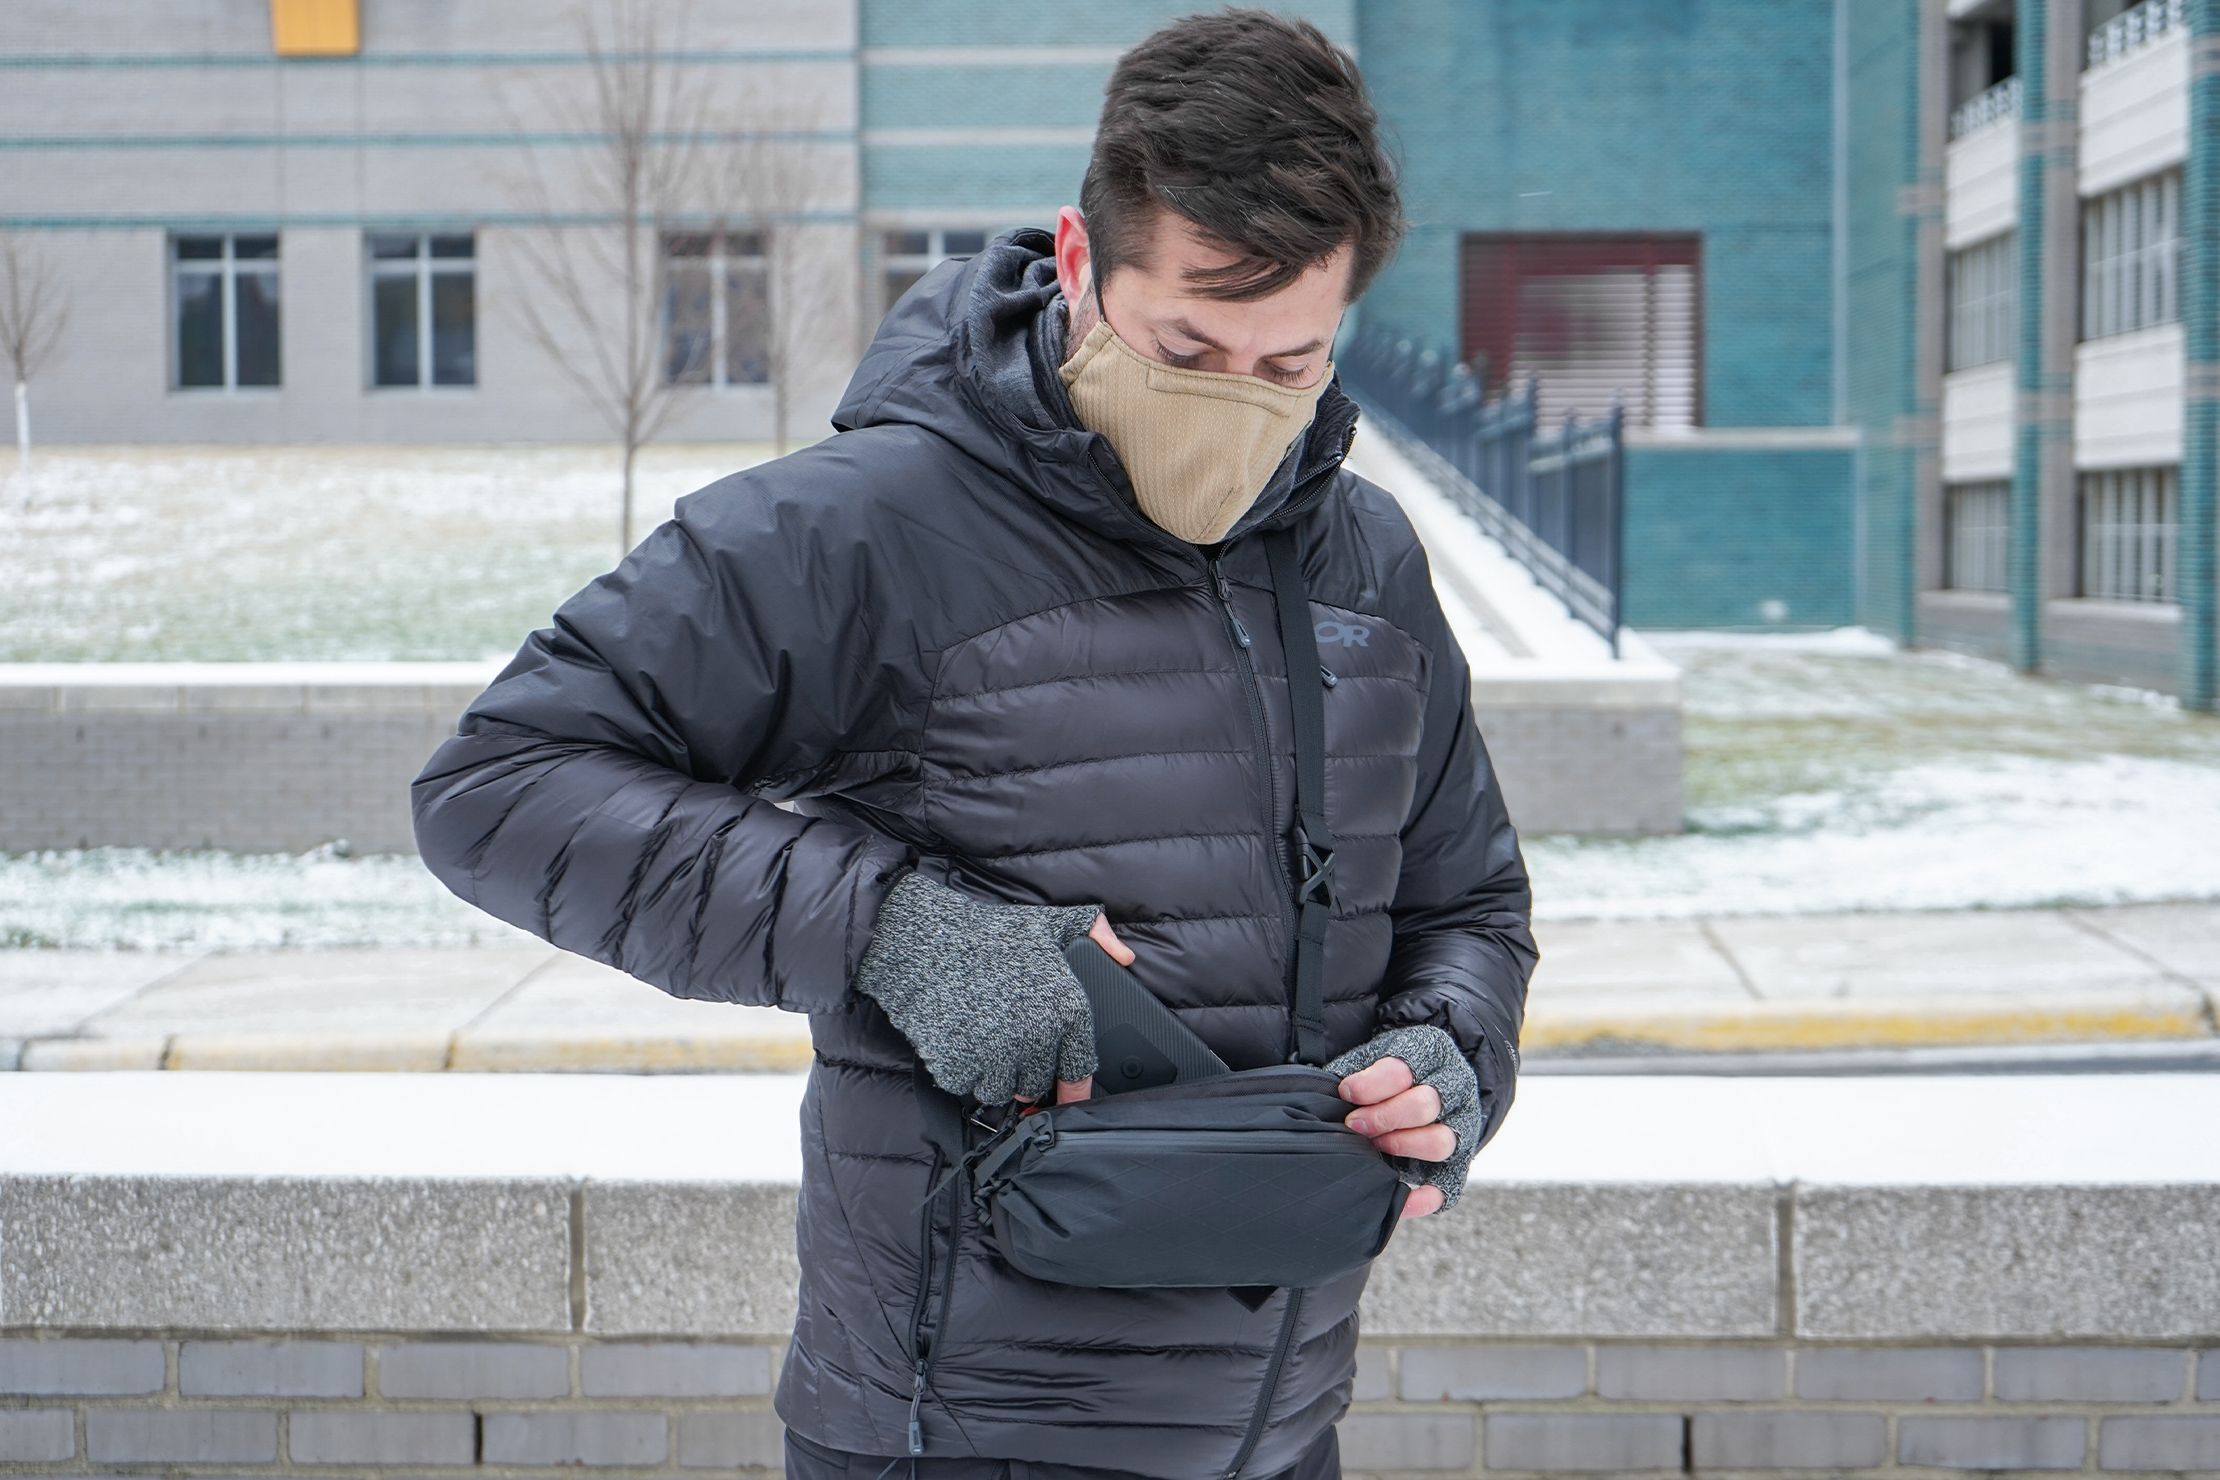 CODEOFBELL ANNEX CARRIER | A smartphone will fit snuggly inside between the two mesh pockets